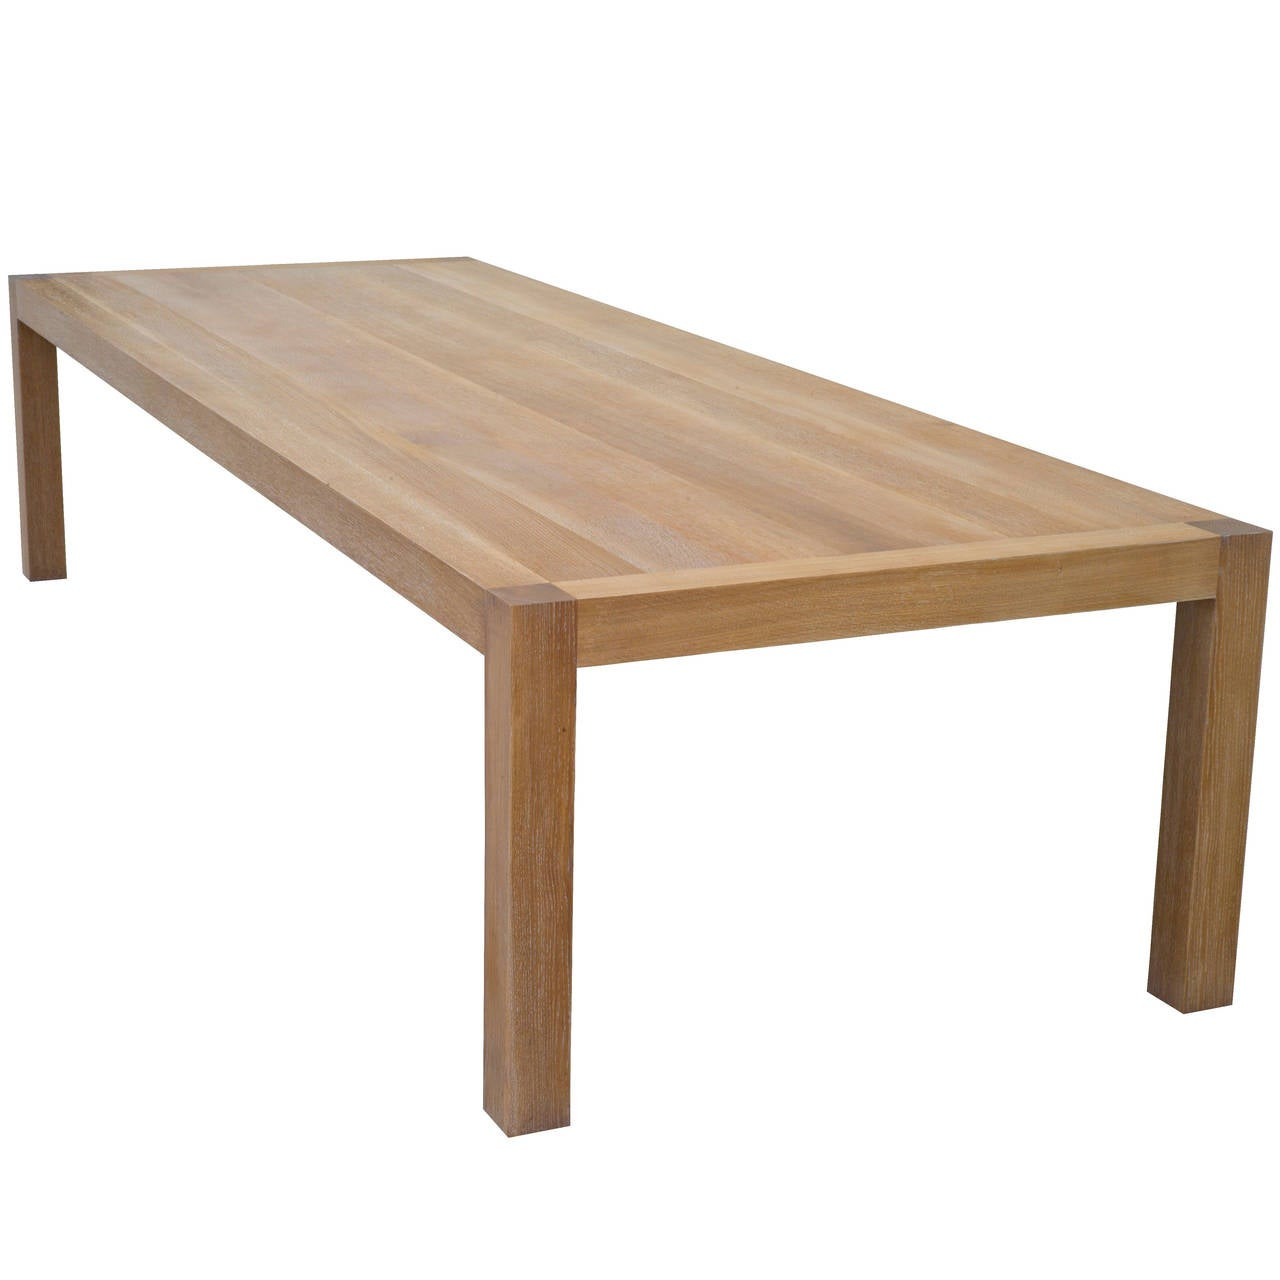 Parsons table with classic limed oak finish for sale at 1stdibs - Limed oak dining tables ...